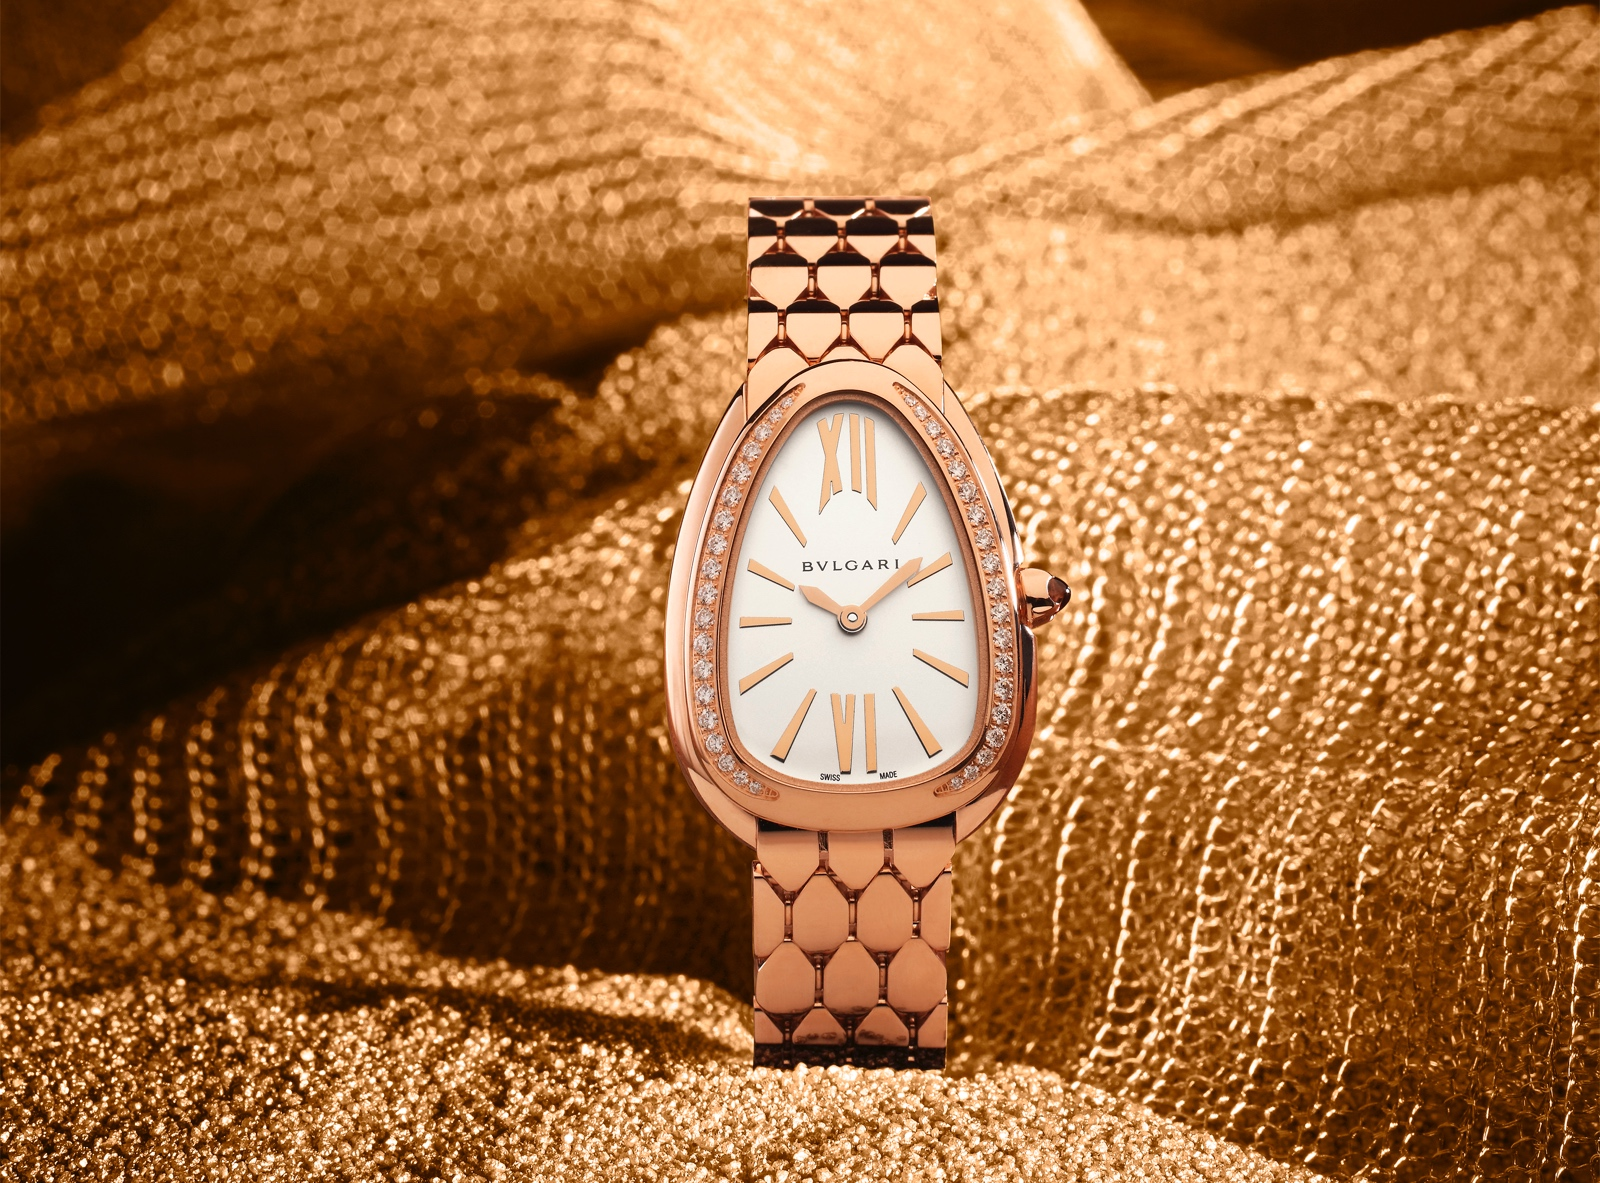 Bulgari en Baselworld 2019 - Serpenti Seduttori rose gold diamonds